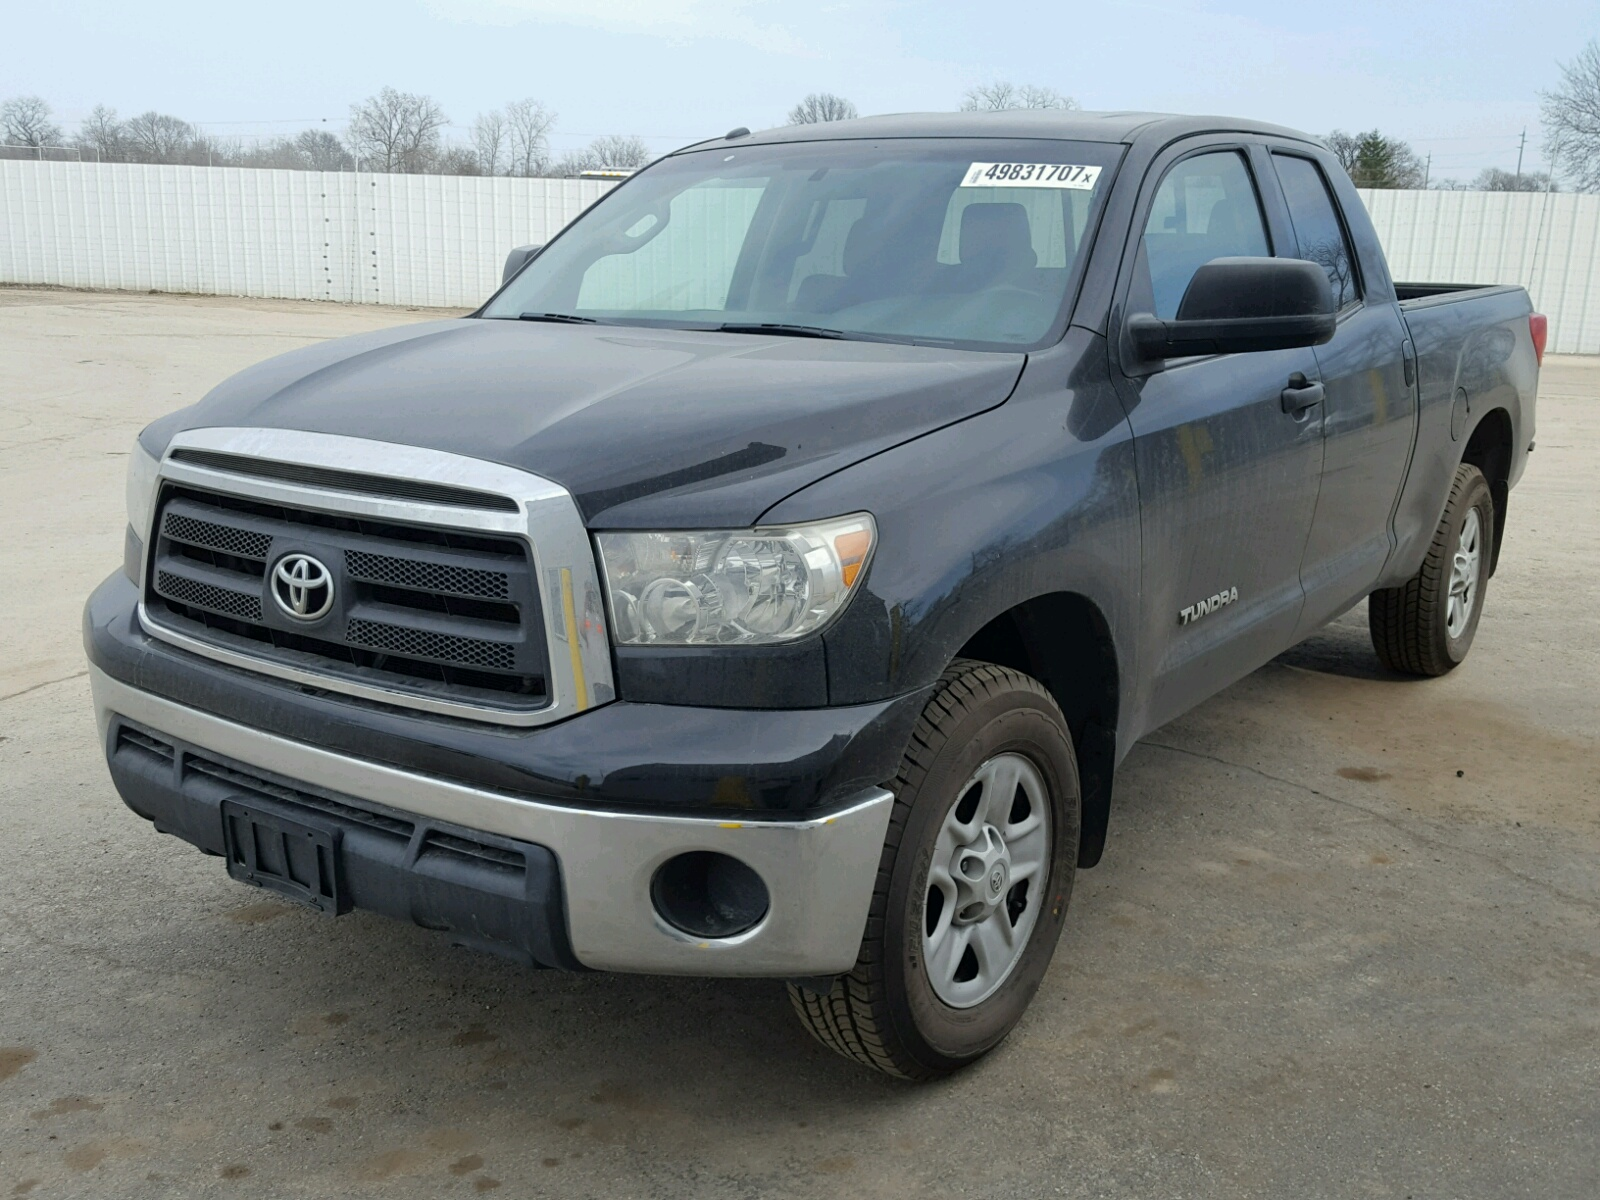 2011 toyota tundra dou for sale at copart columbus oh lot 49831707. Black Bedroom Furniture Sets. Home Design Ideas